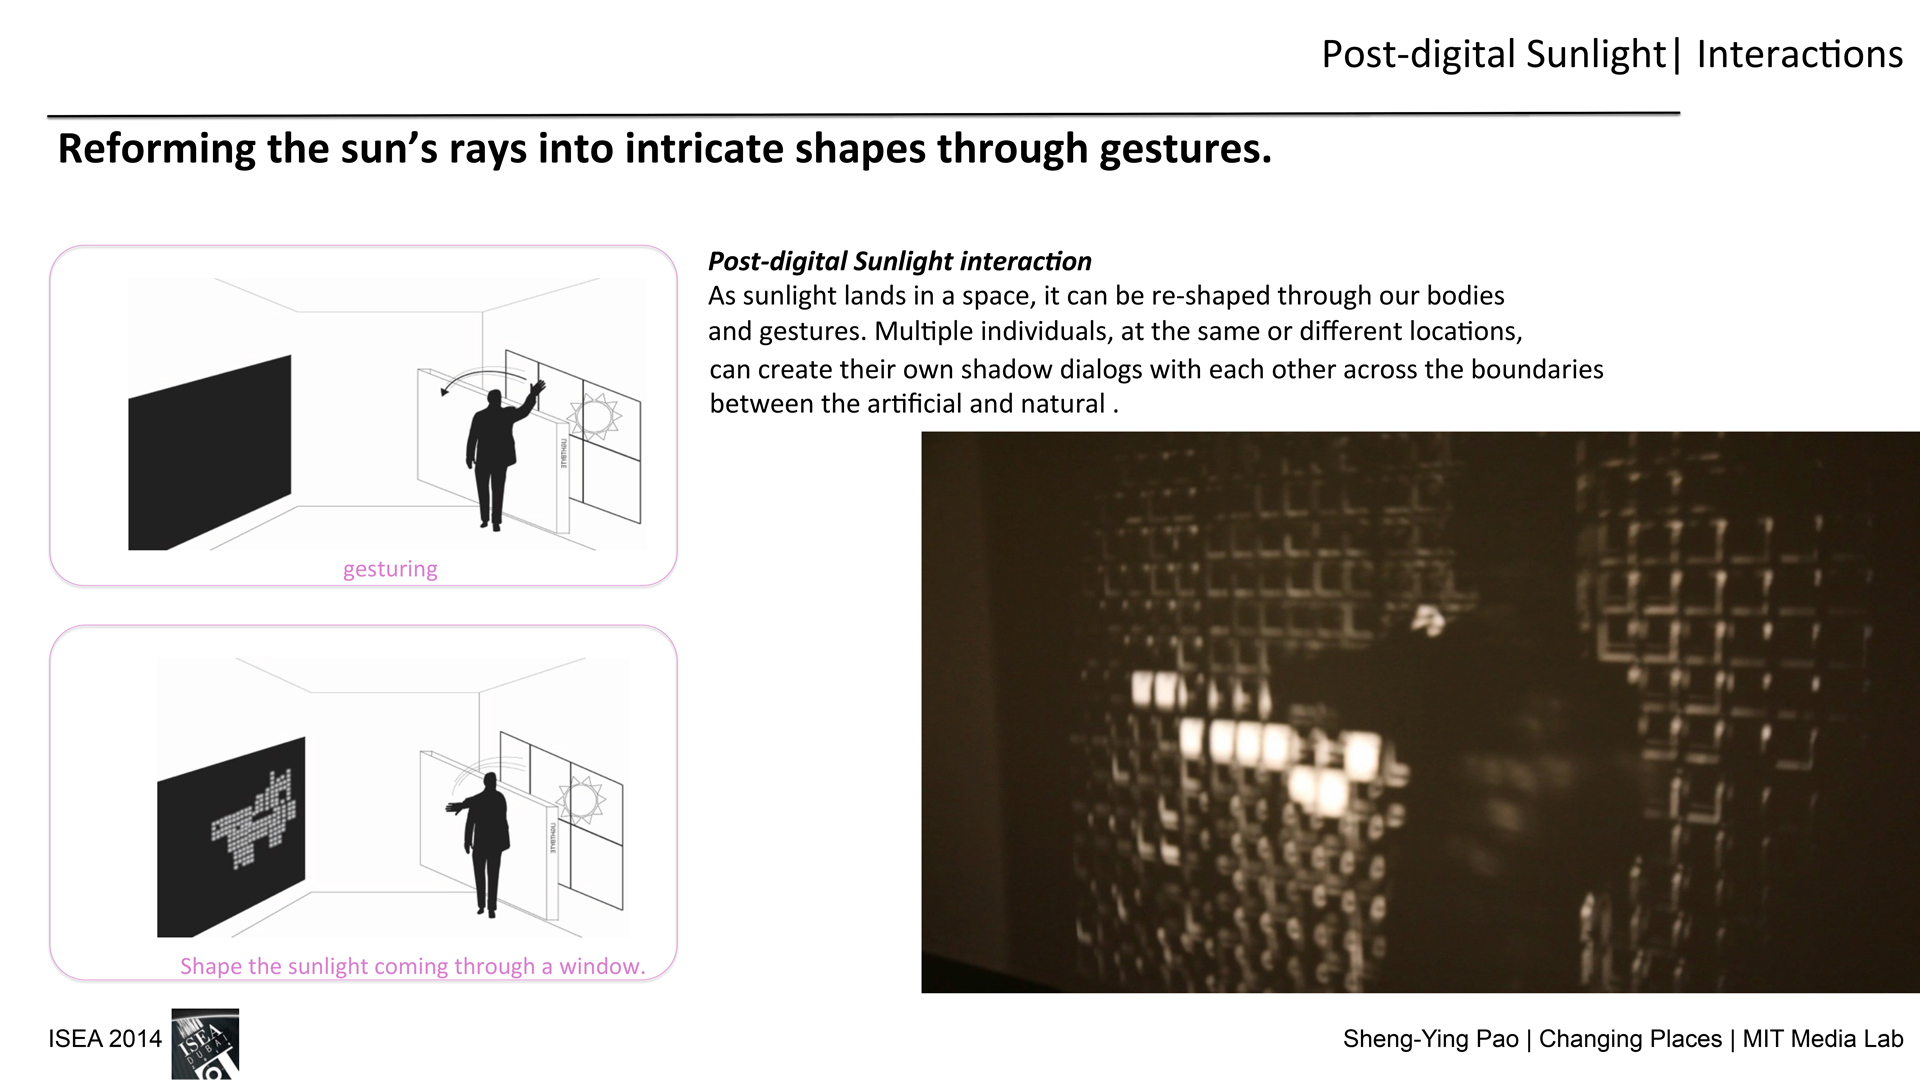 ©, Sheng-Ying Pao, PostDigital Sunlight: Participatory Space Crossing Virtual and Physical, Artificial and Natural